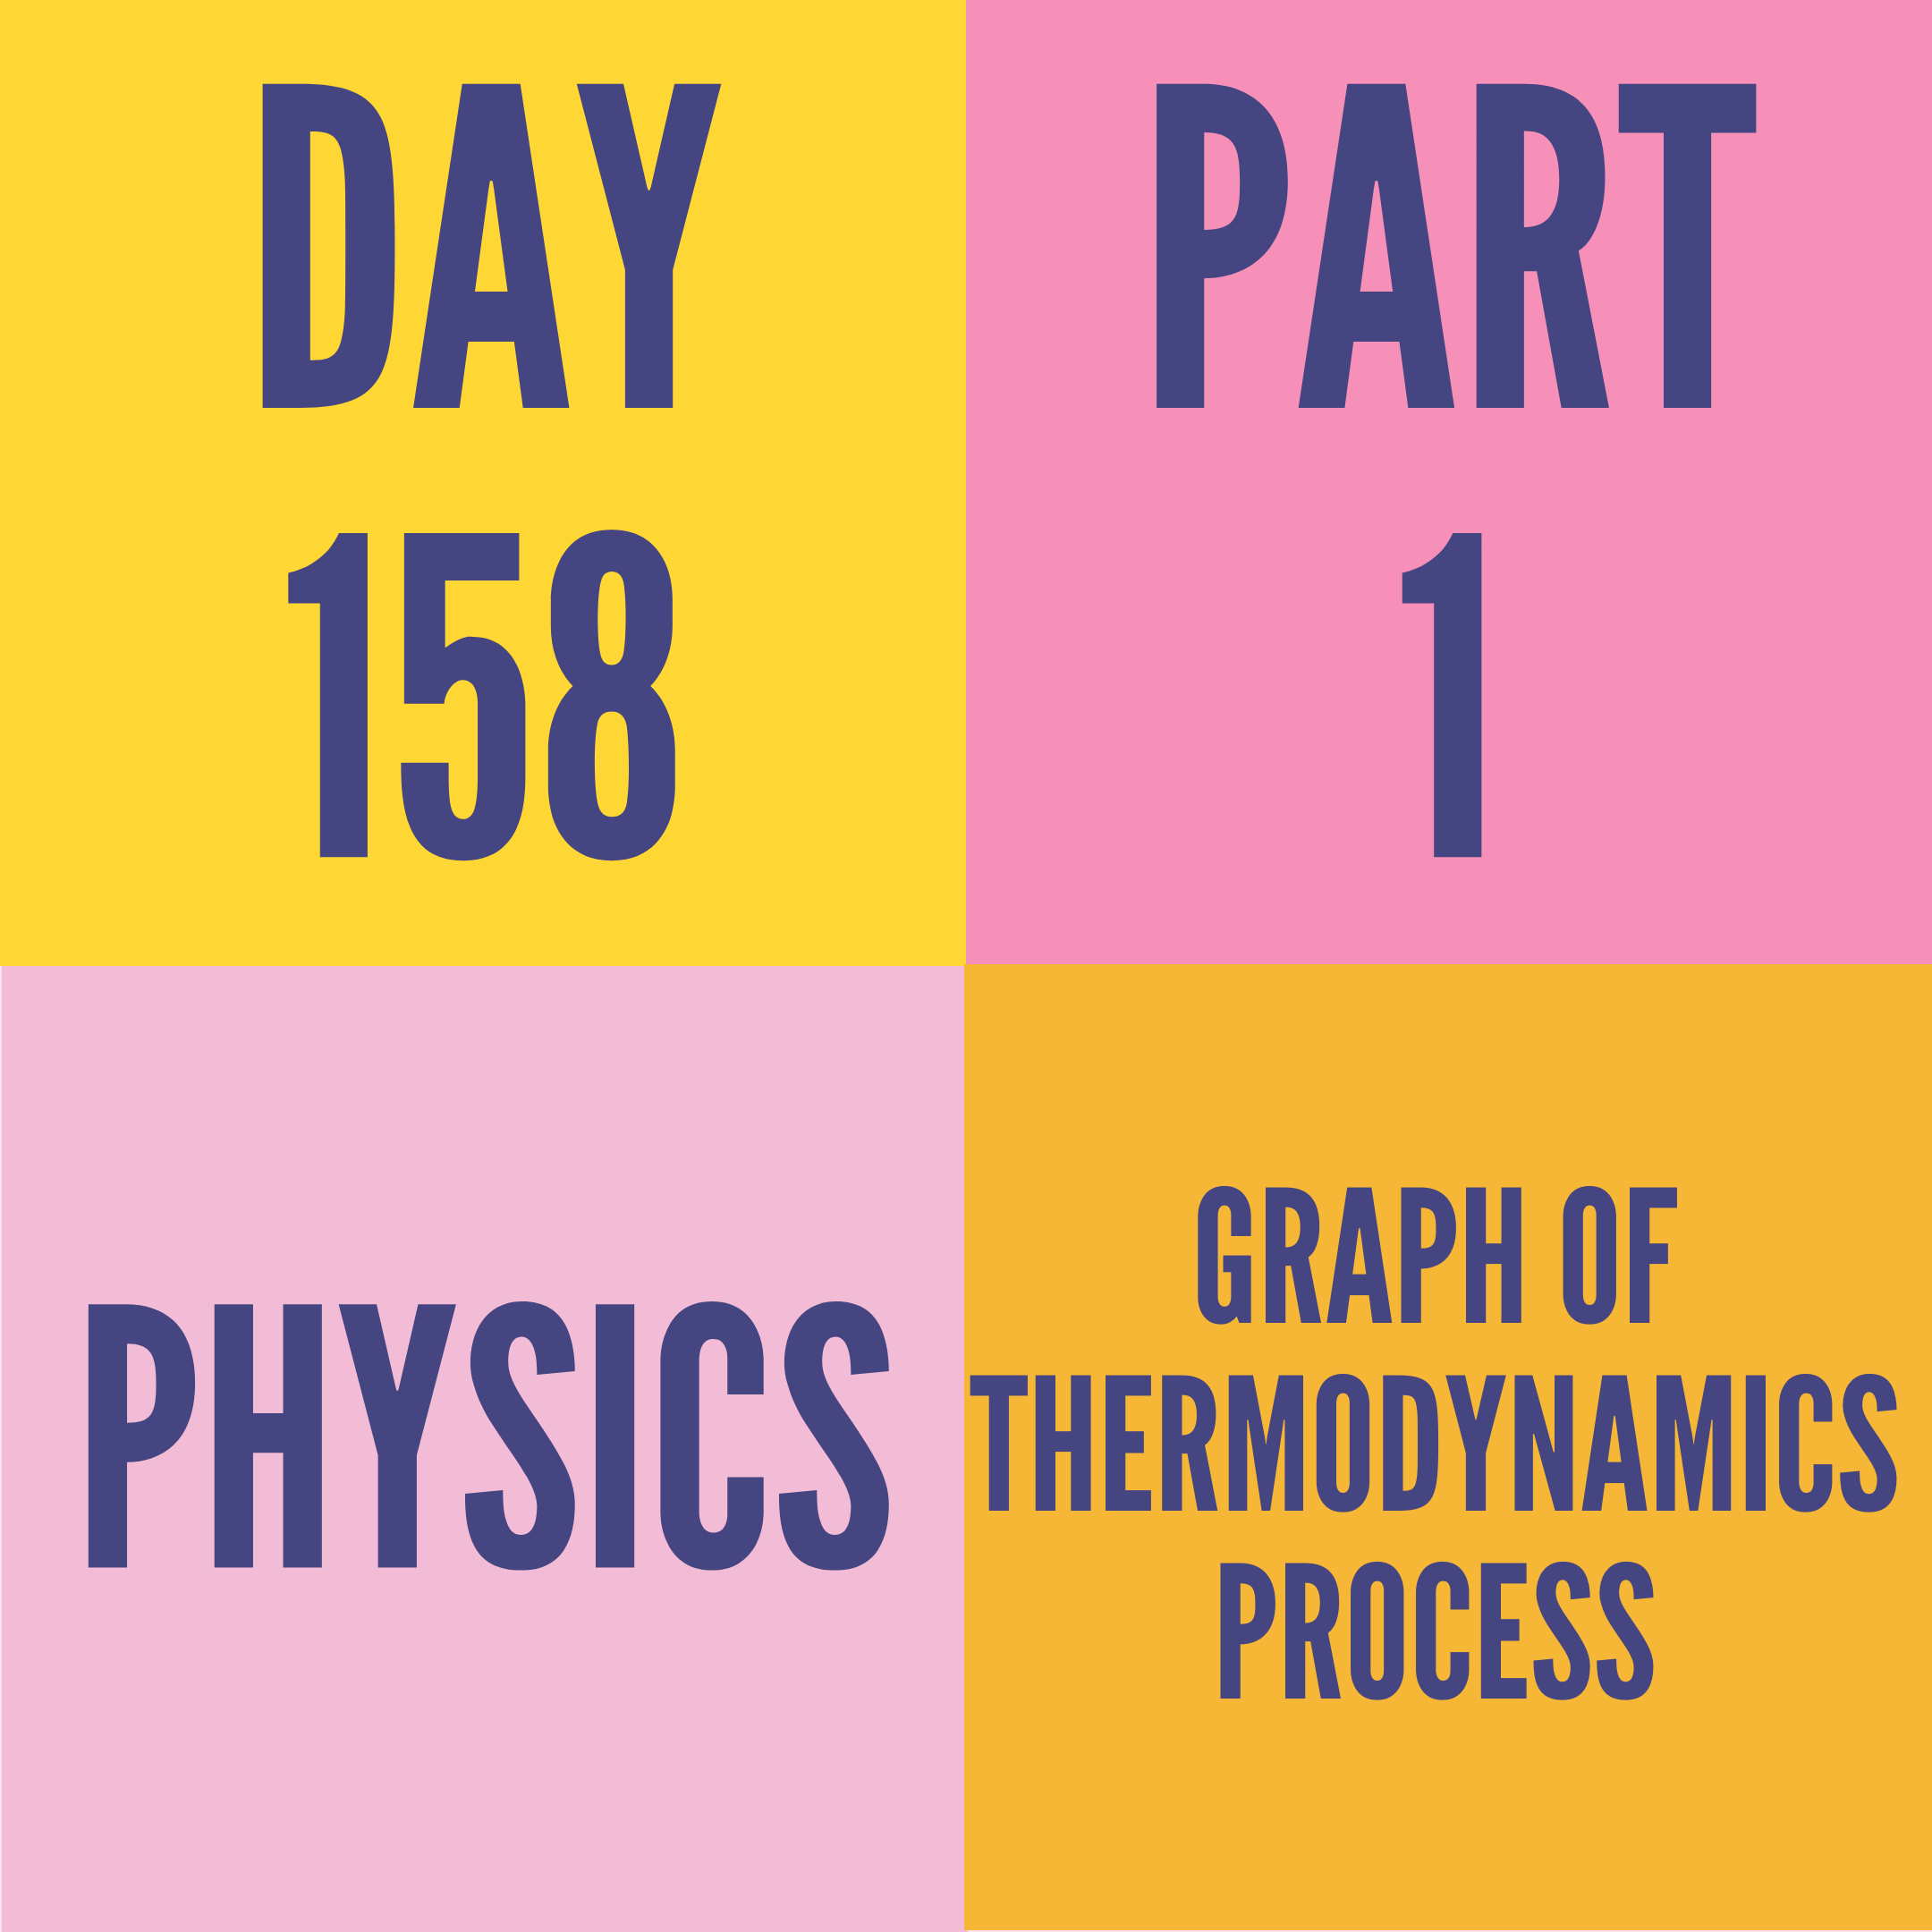 DAY-158 PART-1 GRAPH OF THERMODYNAMICS PROCESS